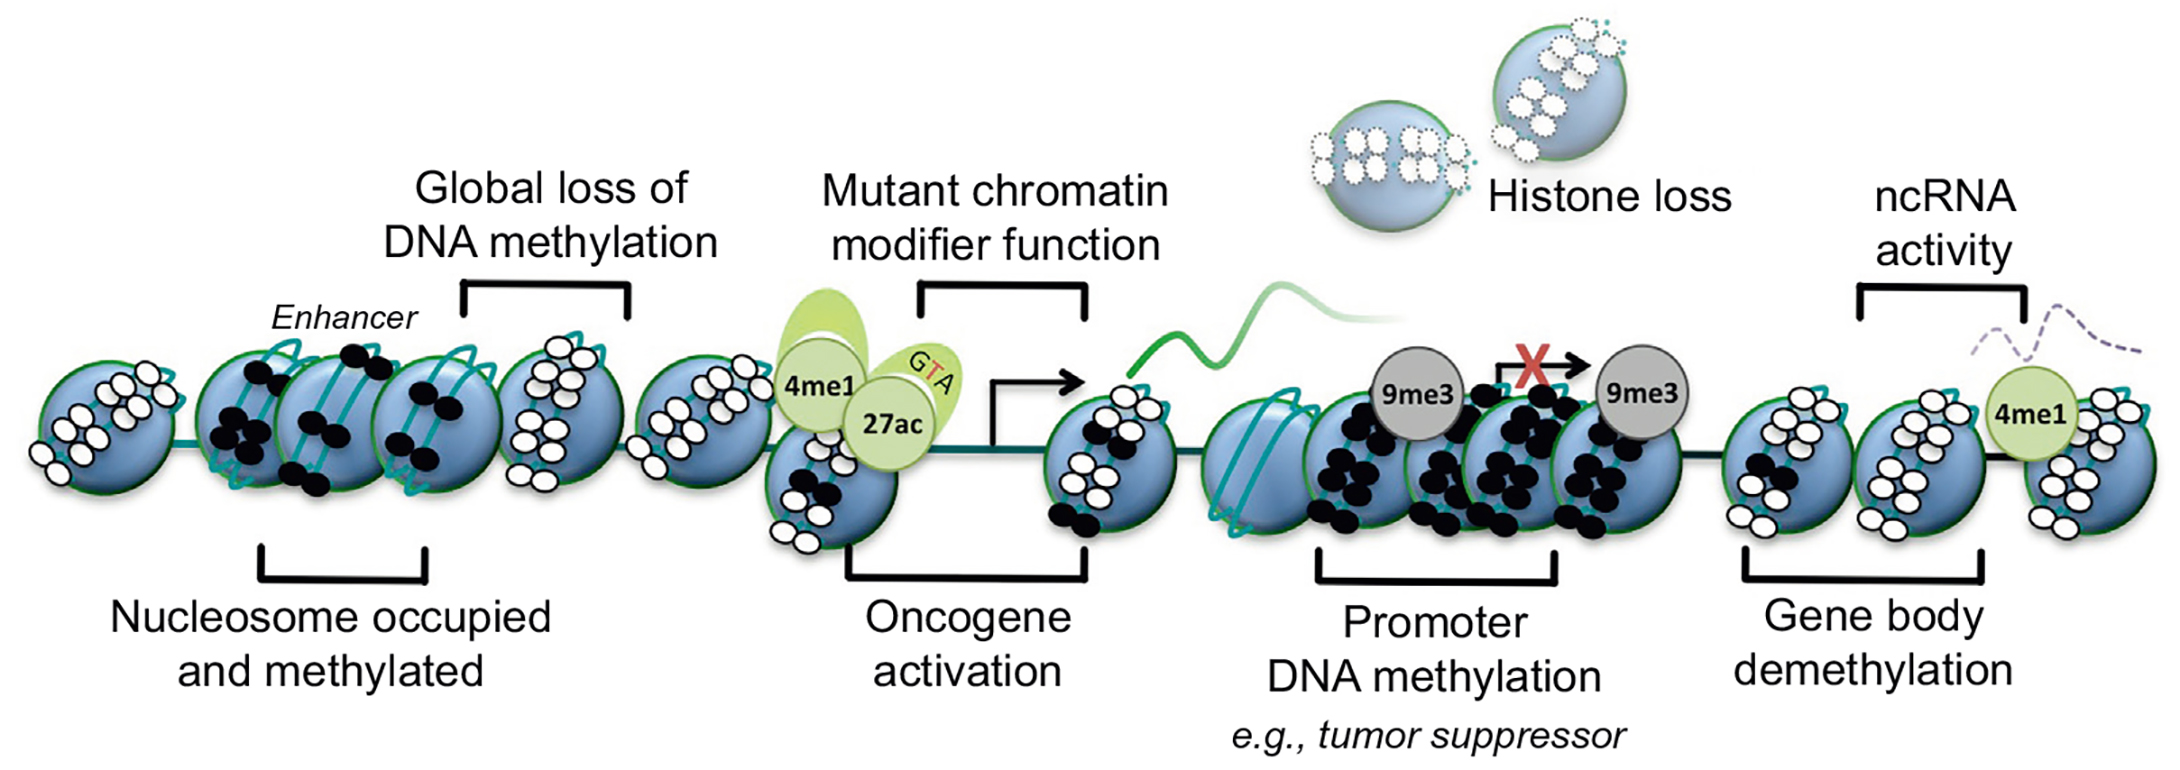 Basic epigenetic mechanisms in cancer. Nucleosome, blue circle; DNA methylation, small black circle; unmethylated DNA, small white circle; transcriptional start site, arrow; inactive transcriptional start site, red cross; H3K9 trimethylation, 9me3 (gray, silenced); H3K4 monomethylation, 4me1 (green, active); H3K27 acetylation, 27ac (green, active).